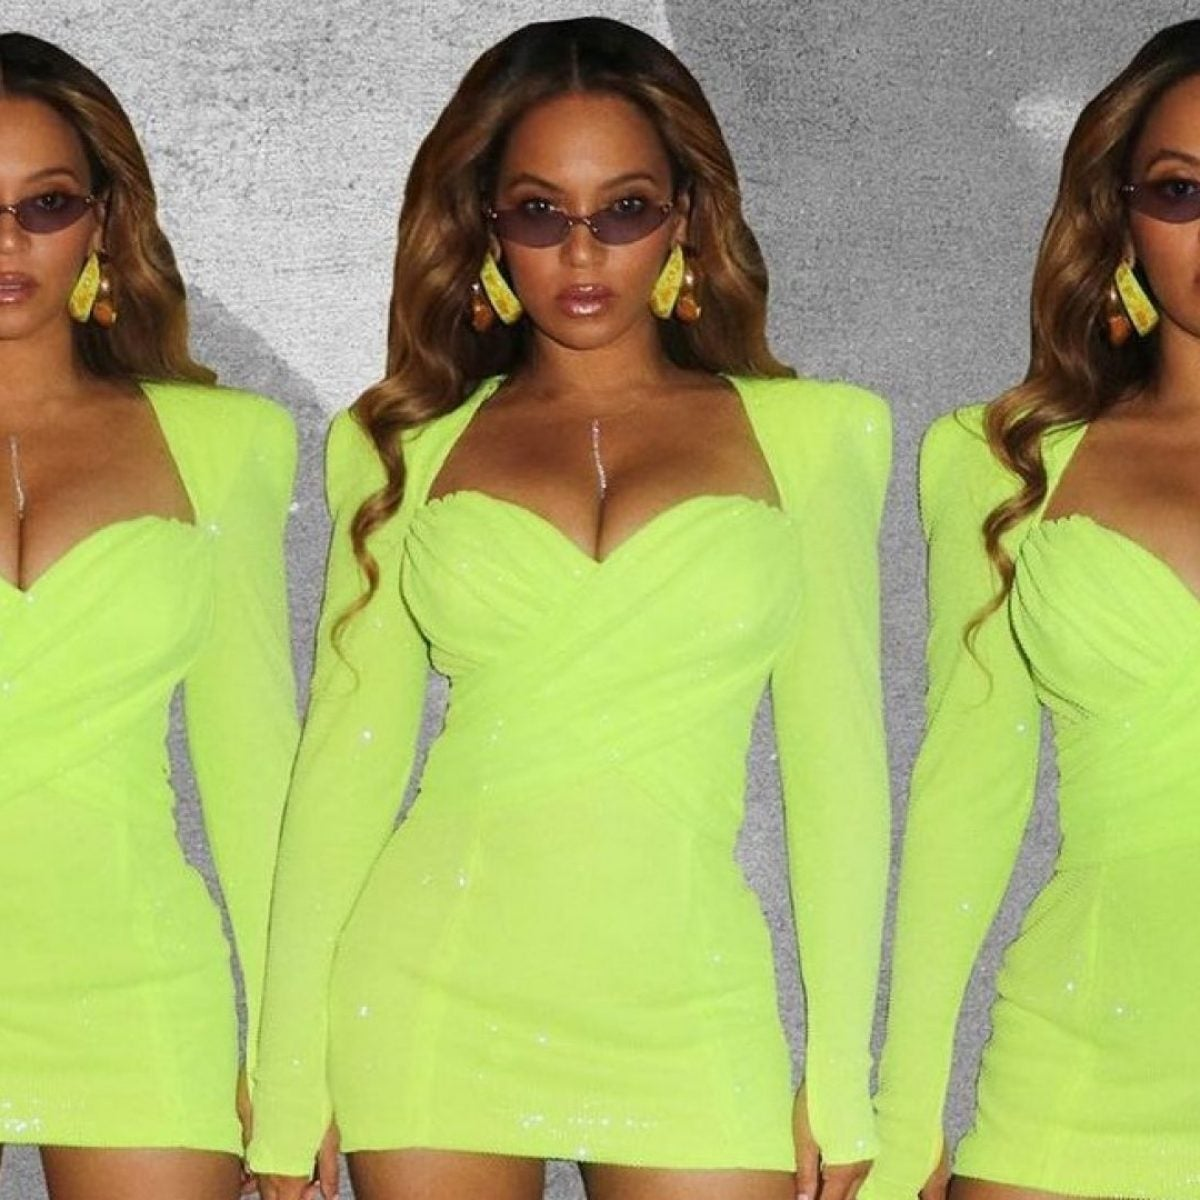 Beyoncé Sizzles In Lime Green Mini Dress In Latest Instagram Post